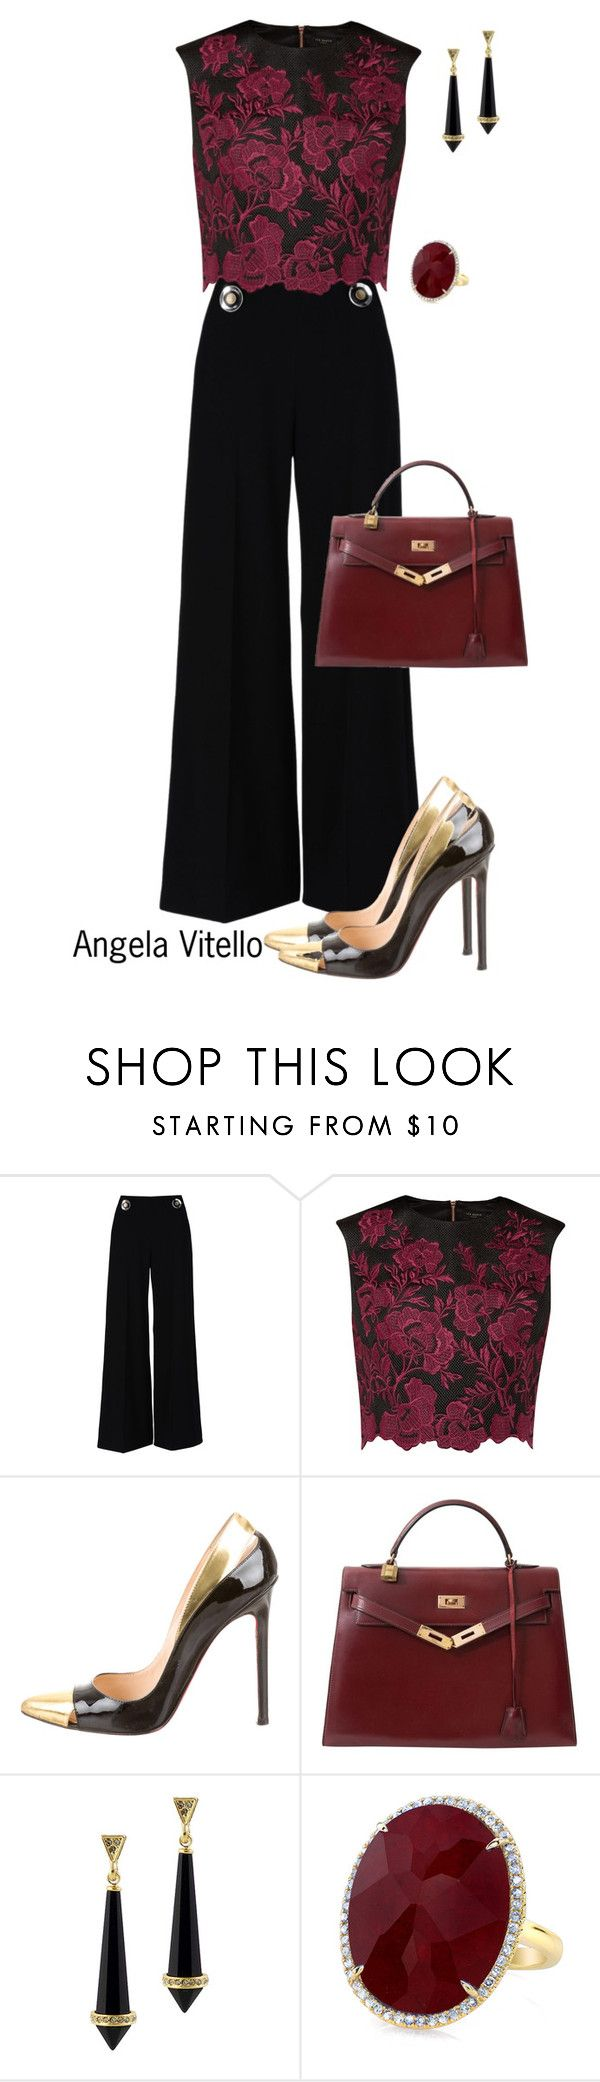 """Untitled #672"" by angela-vitello on Polyvore featuring STELLA McCARTNEY, Ted Baker, Christian Louboutin, Hermès, House of Harlow 1960, women's clothing, women, female, woman and misses"